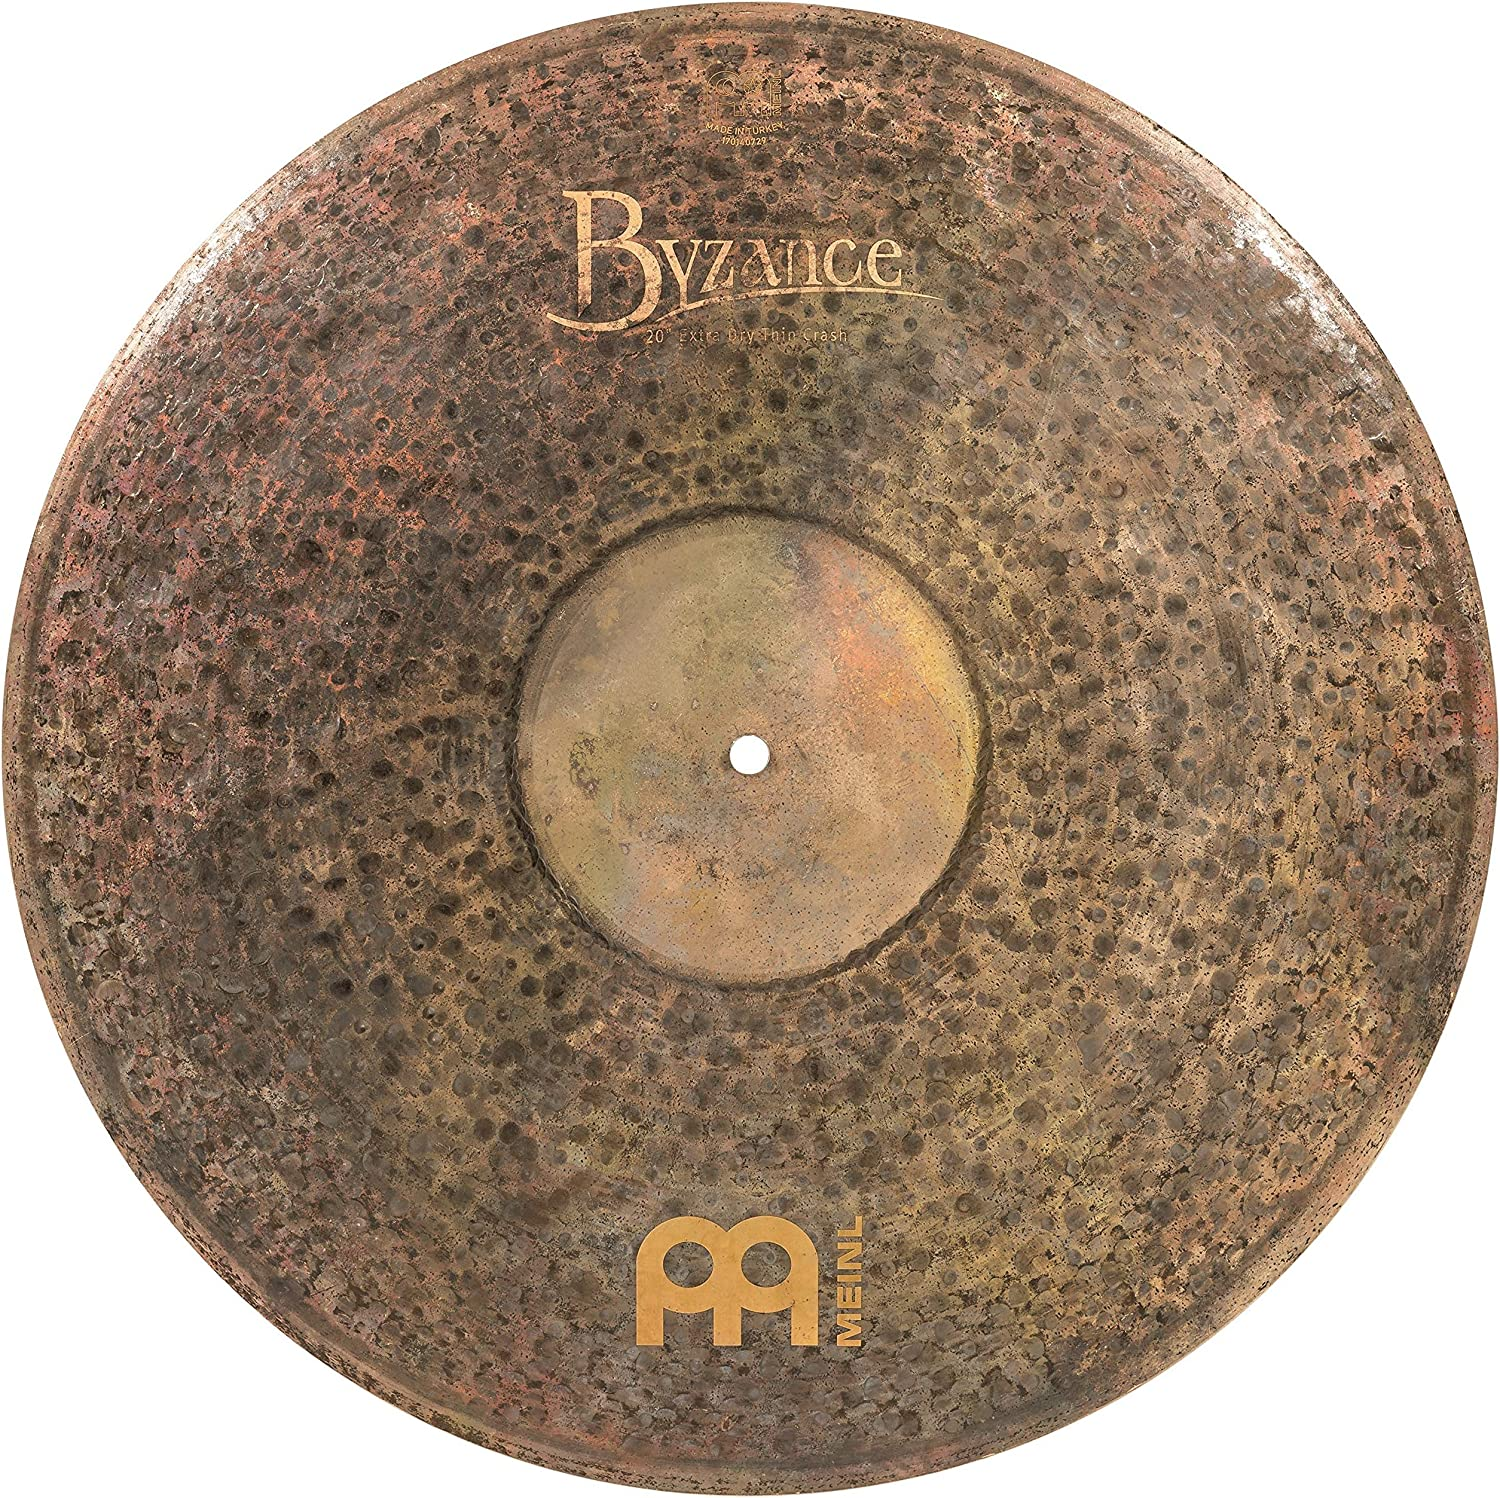 Meinl Credence Cymbals Byzance 20